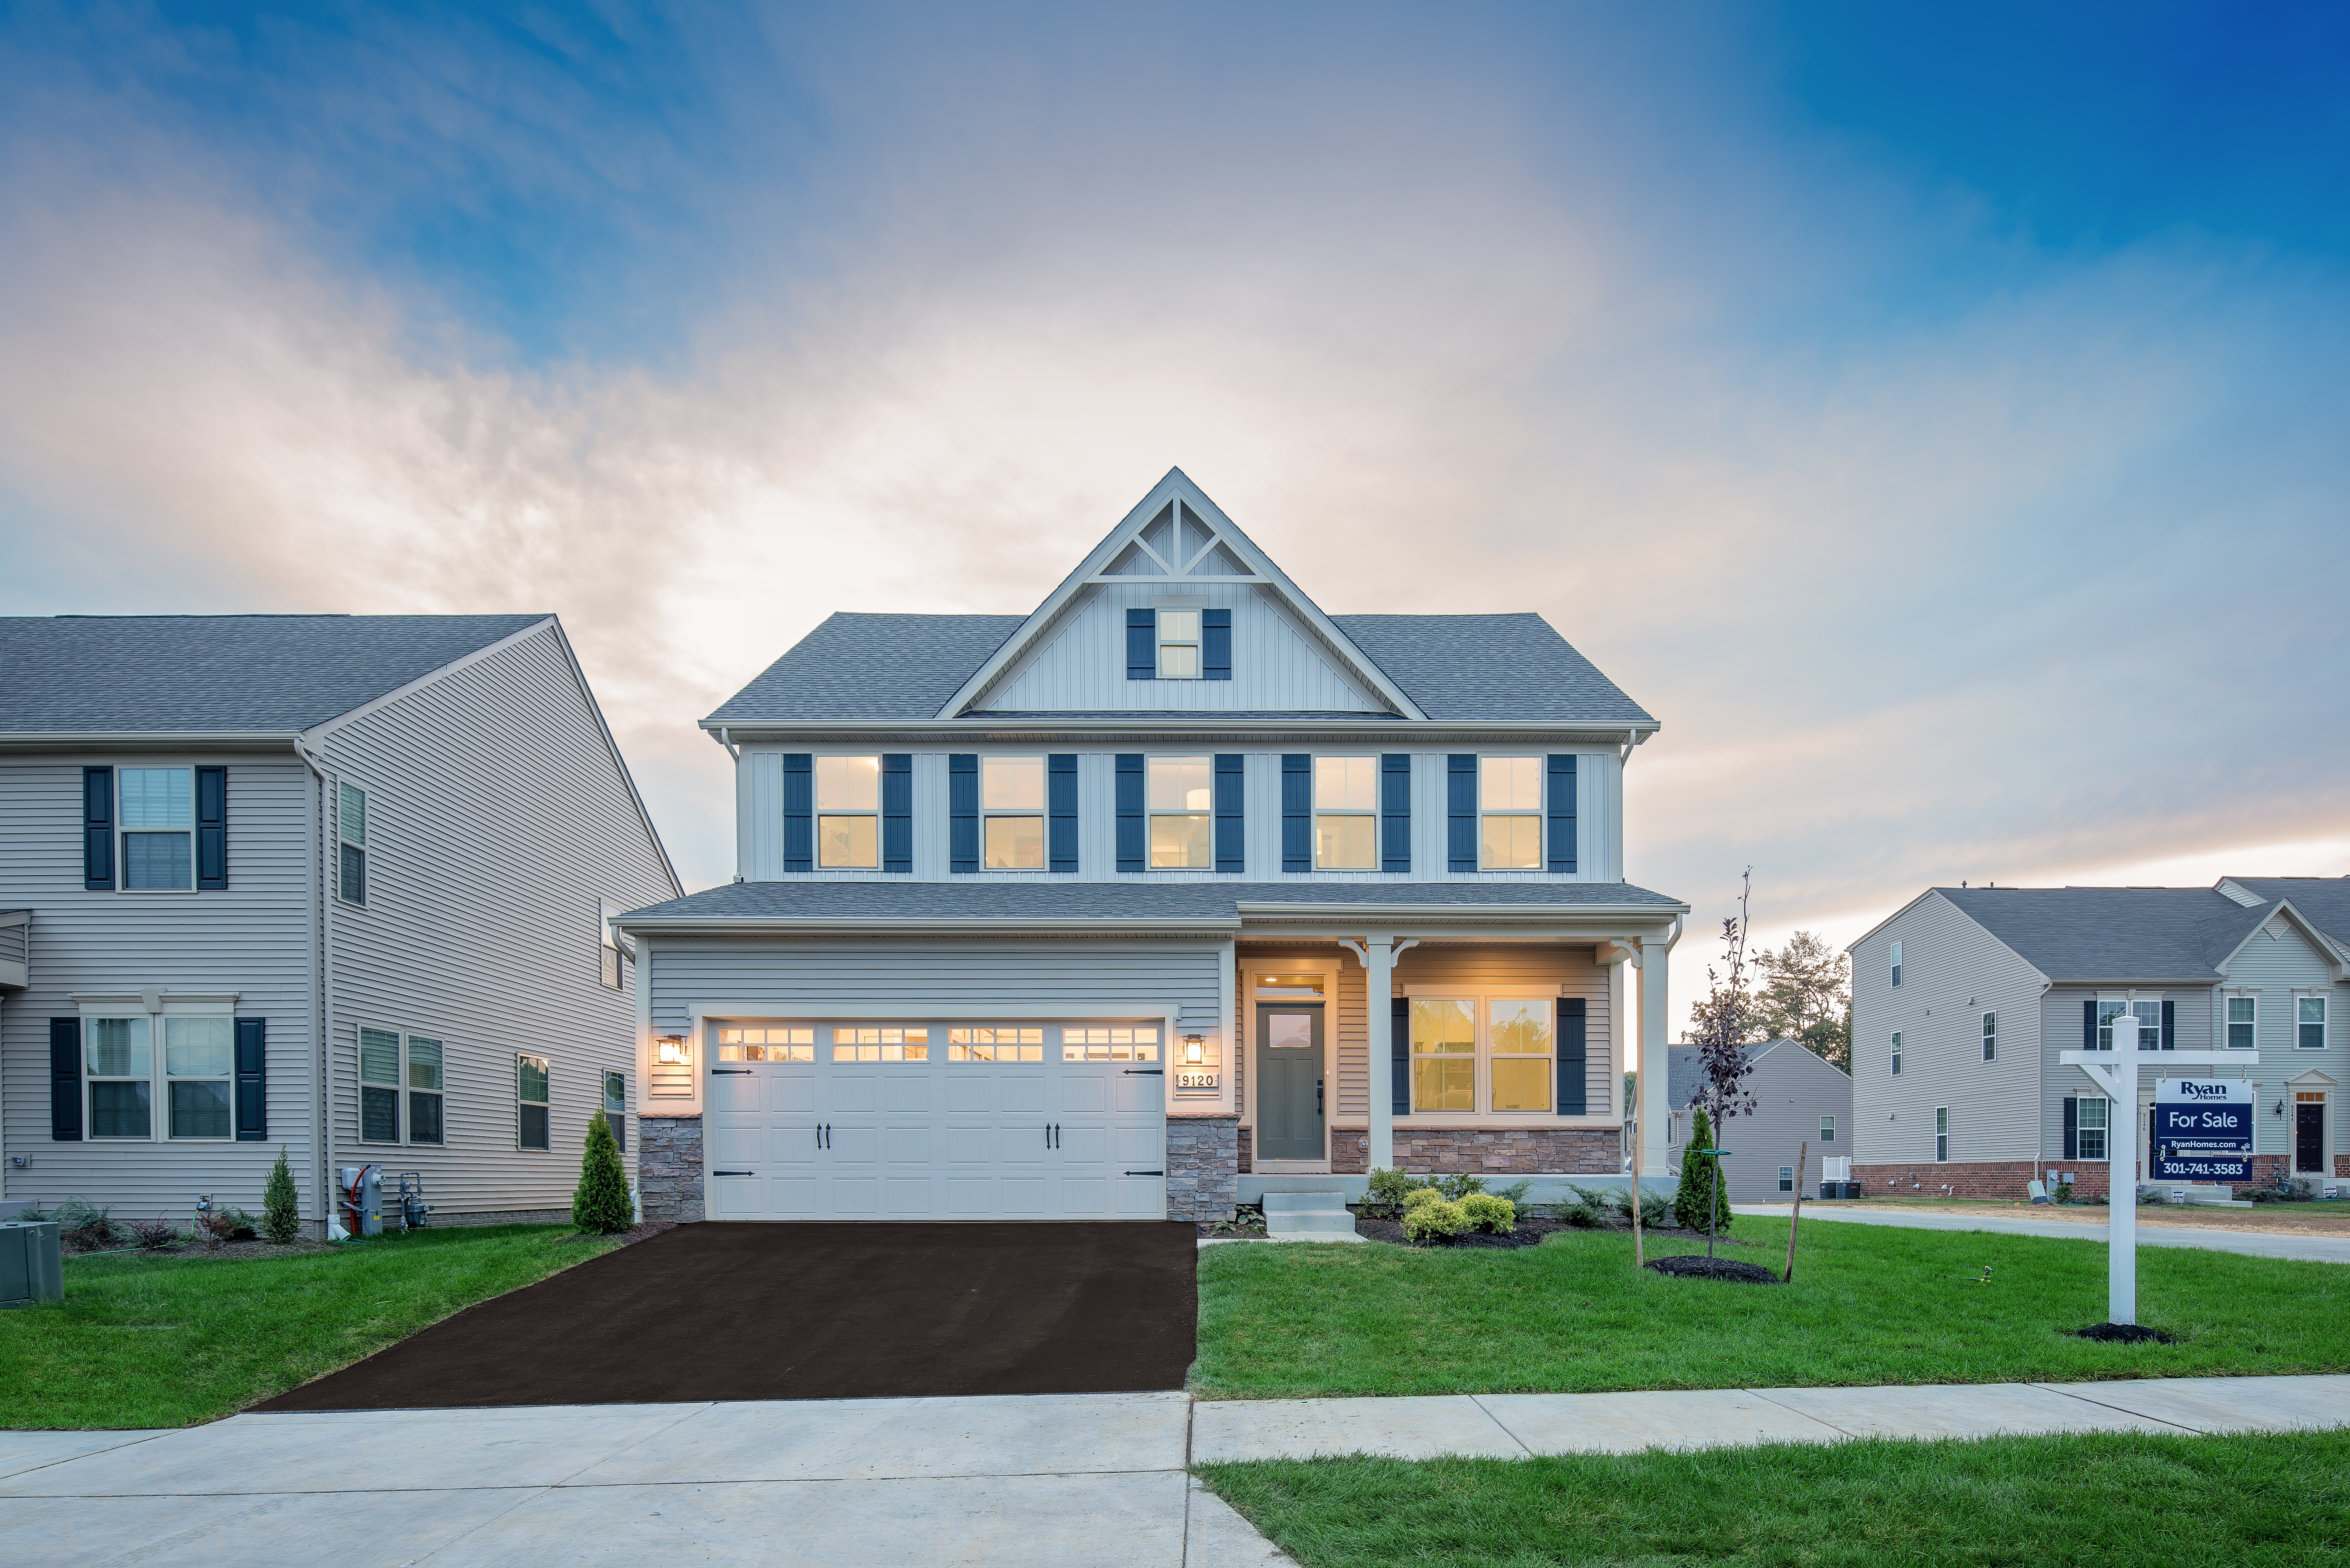 New Homes For Sale At Rainwater In Duncan Sc Within The Spartanburg